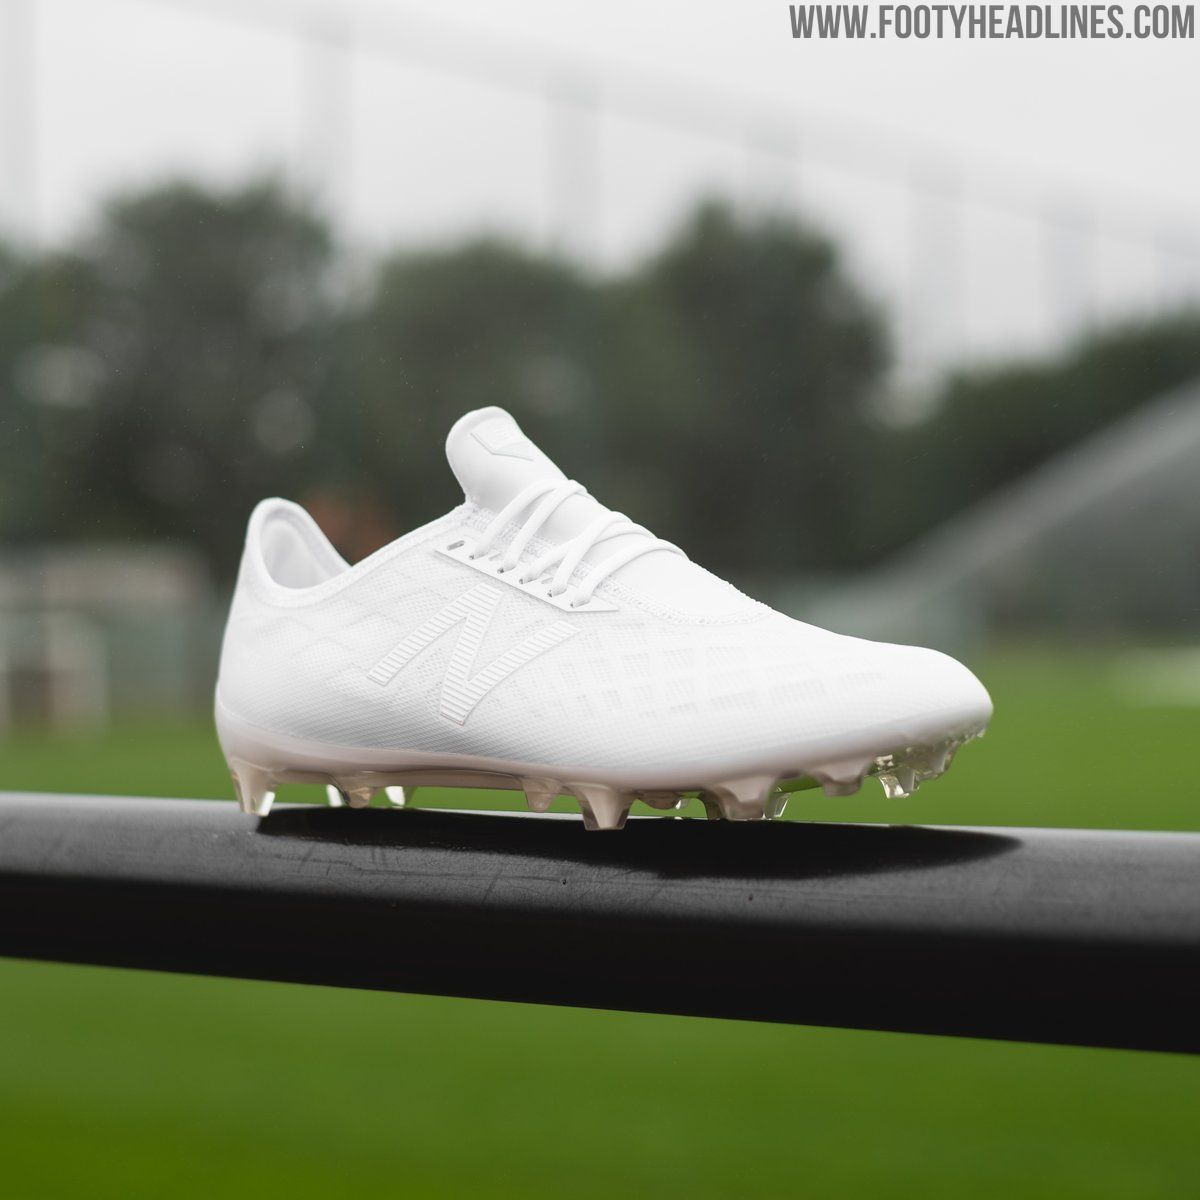 542dc01613c3 New Balance Furon + Tekela Blackout and Whiteout Pack Released - Footy  Headlines